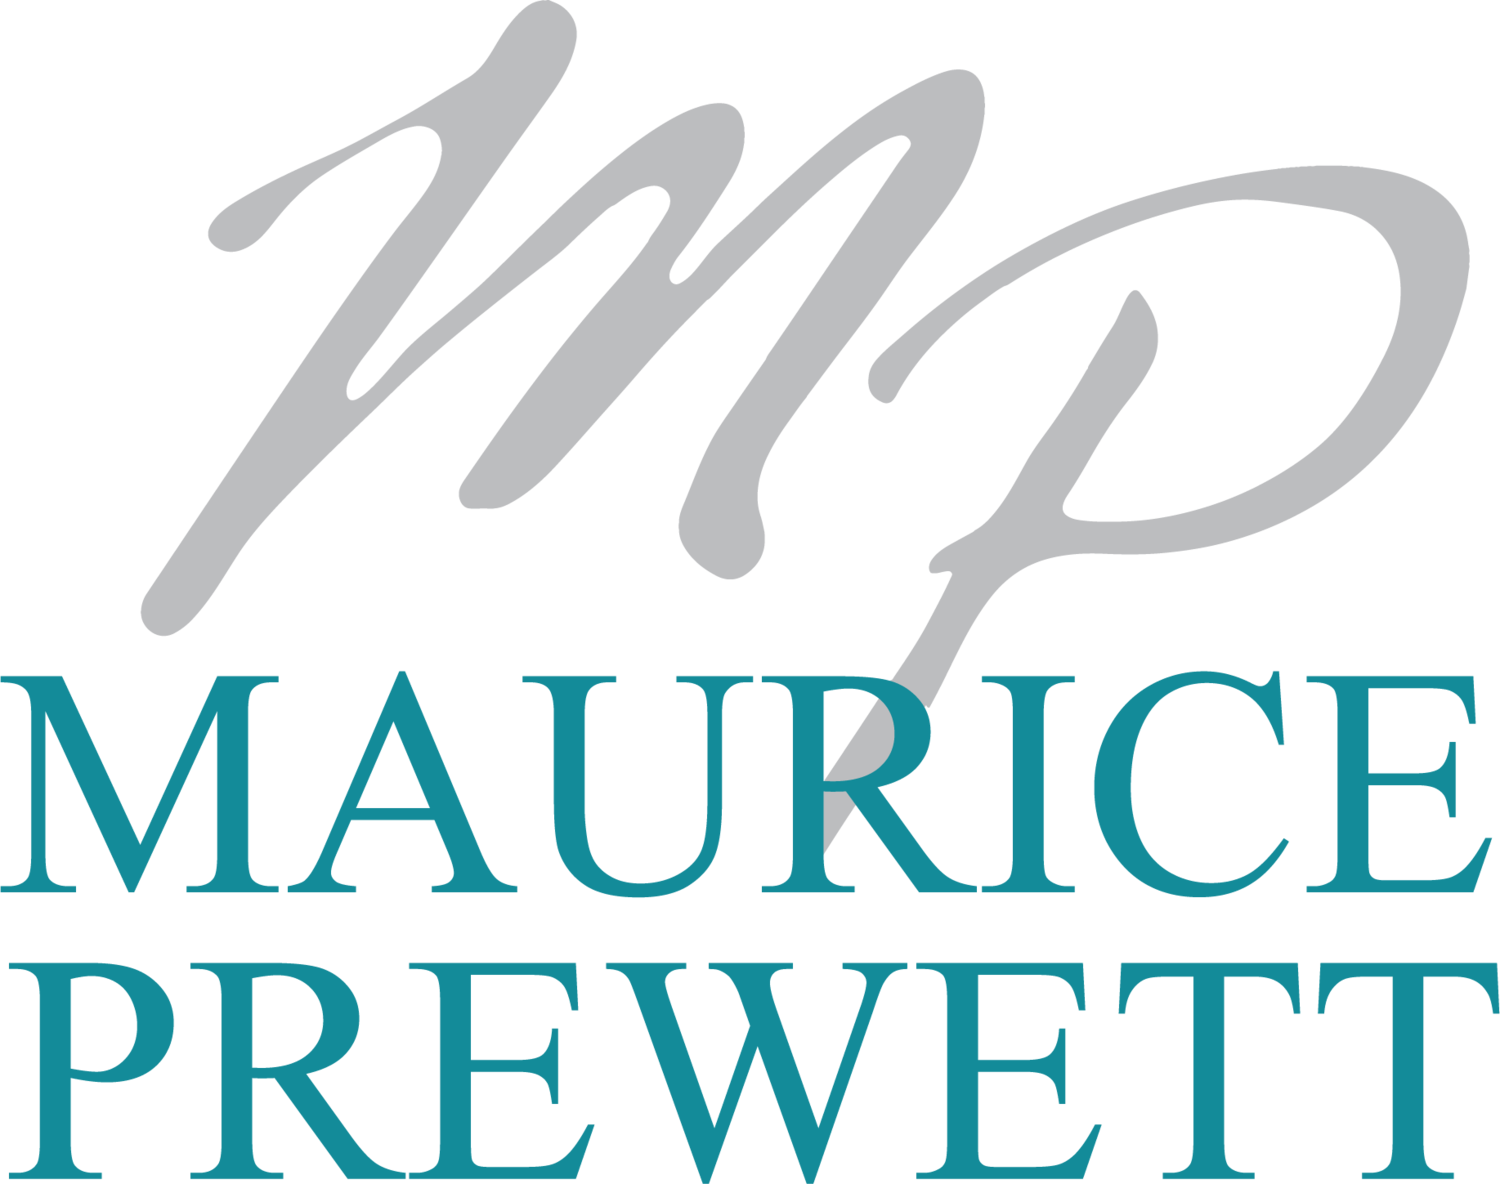 Maurice Prewett Kitchens & Carpets